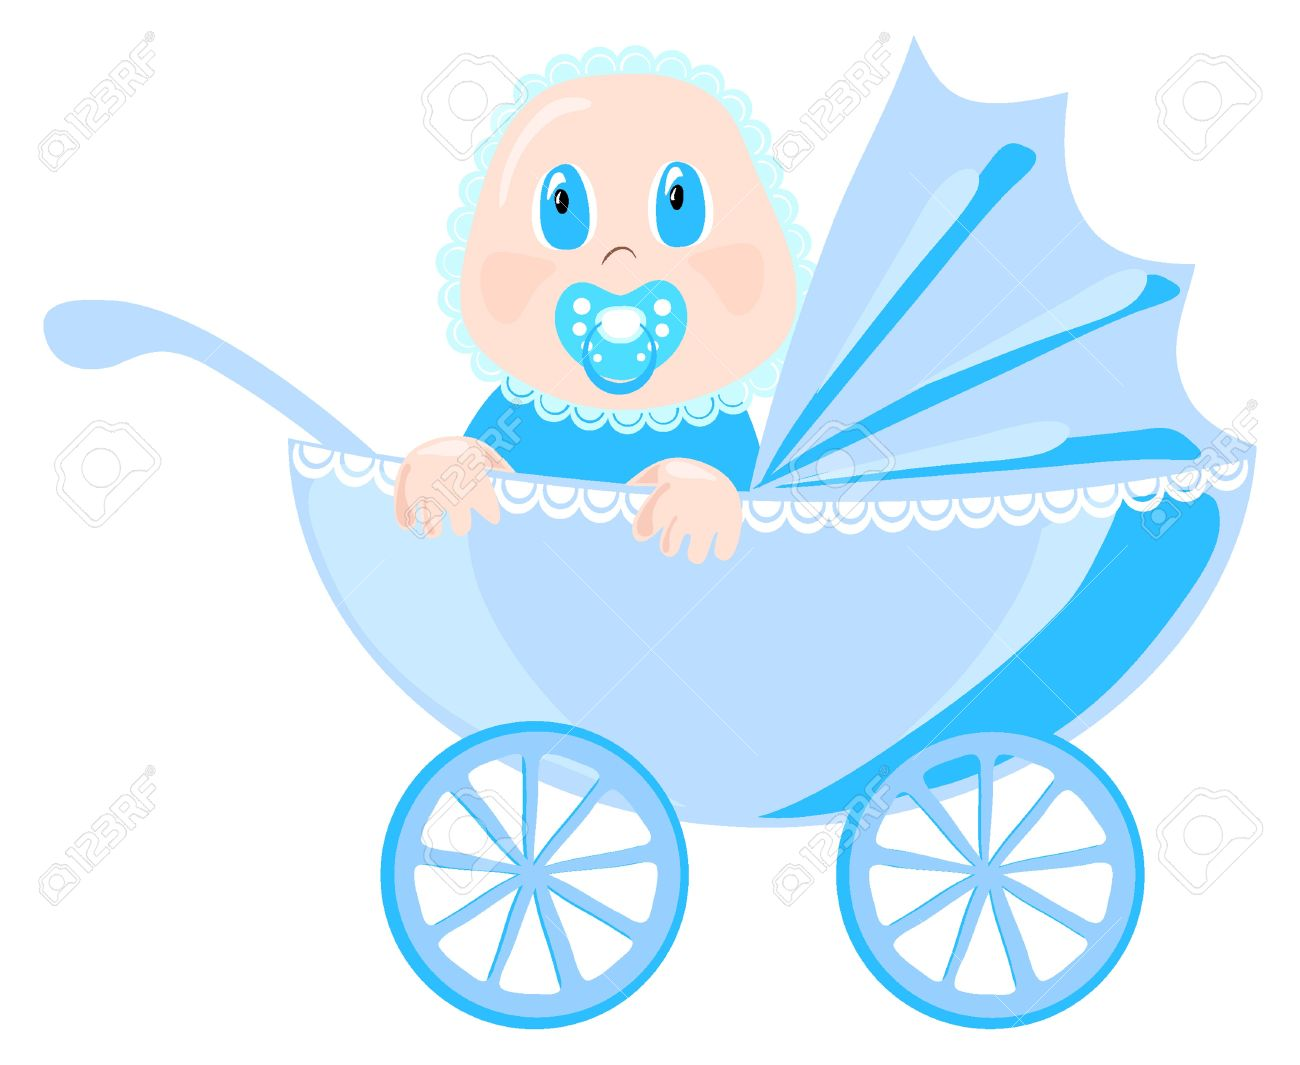 Baby In Blue Wear Sits In Pram Illustration Royalty Free Cliparts.